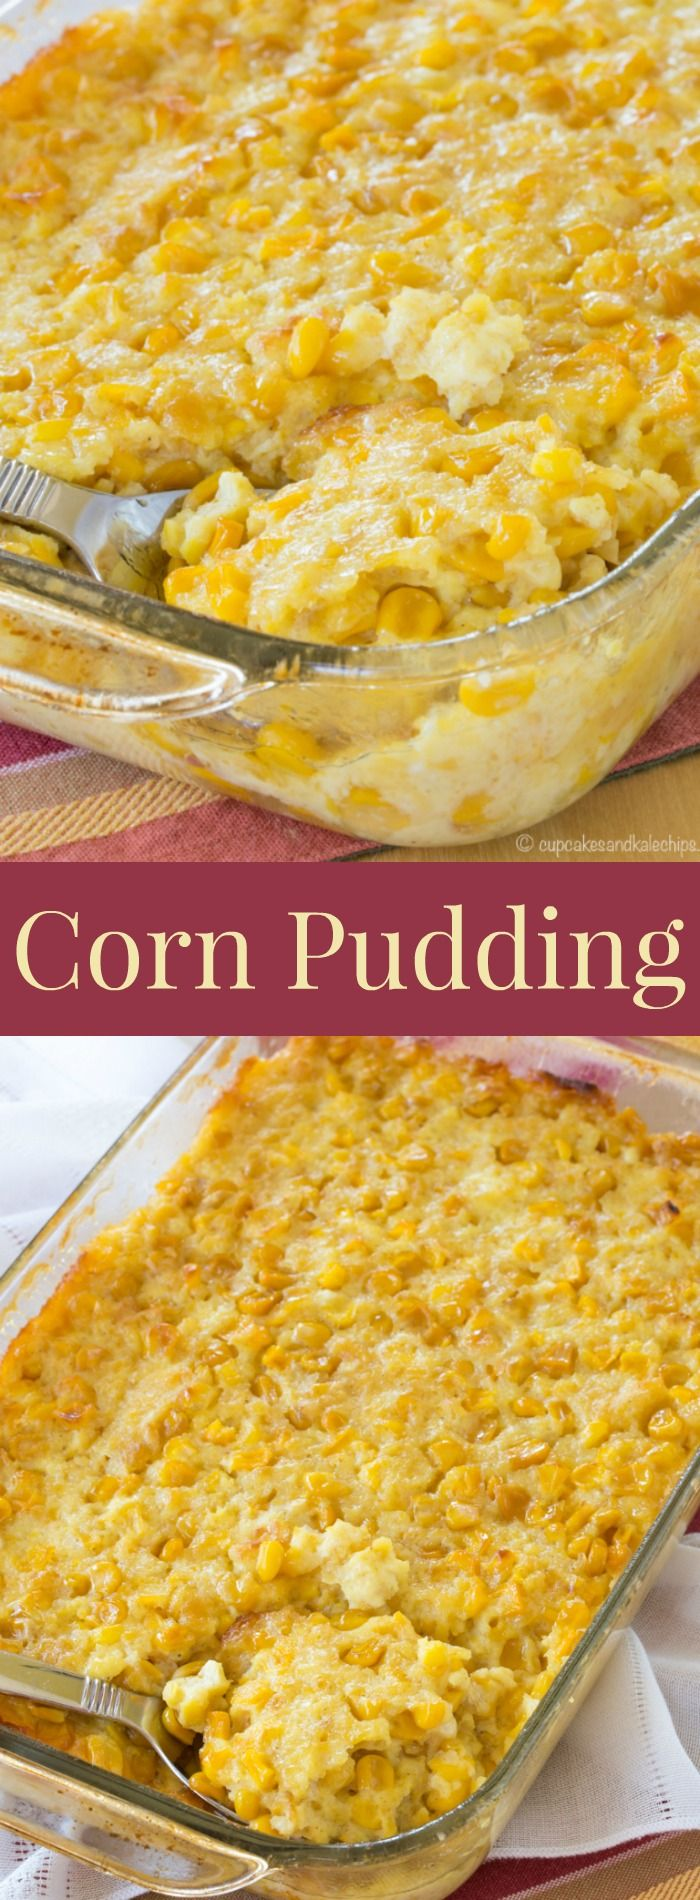 Corn Pudding - a family favorite side dish recipe for Thanksgiving and Christmas